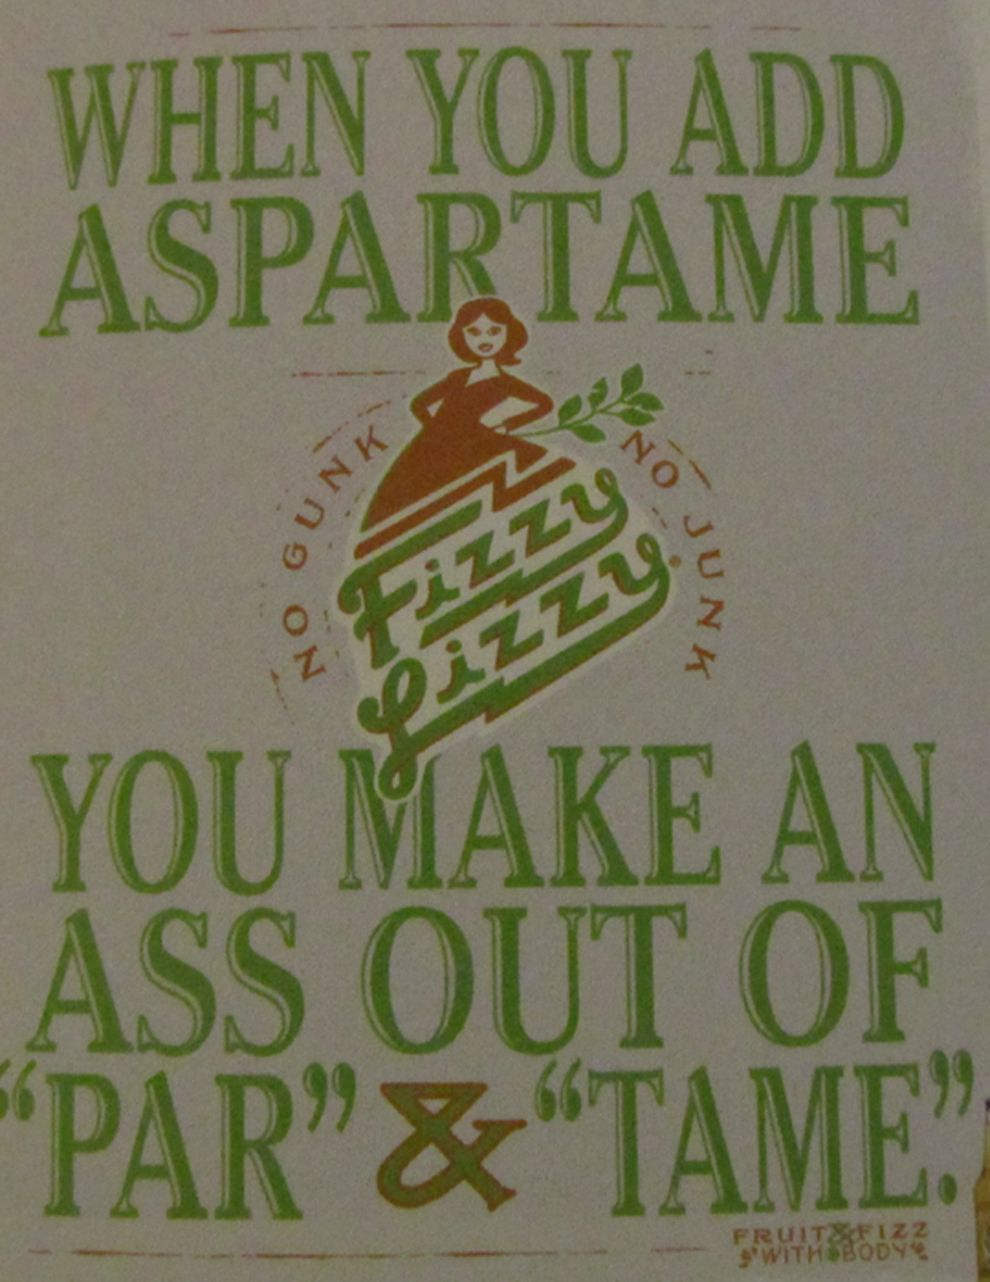 funny Aspartame poster #typography poster  Quick side note: DON'T CONSUME ASPARTAME!